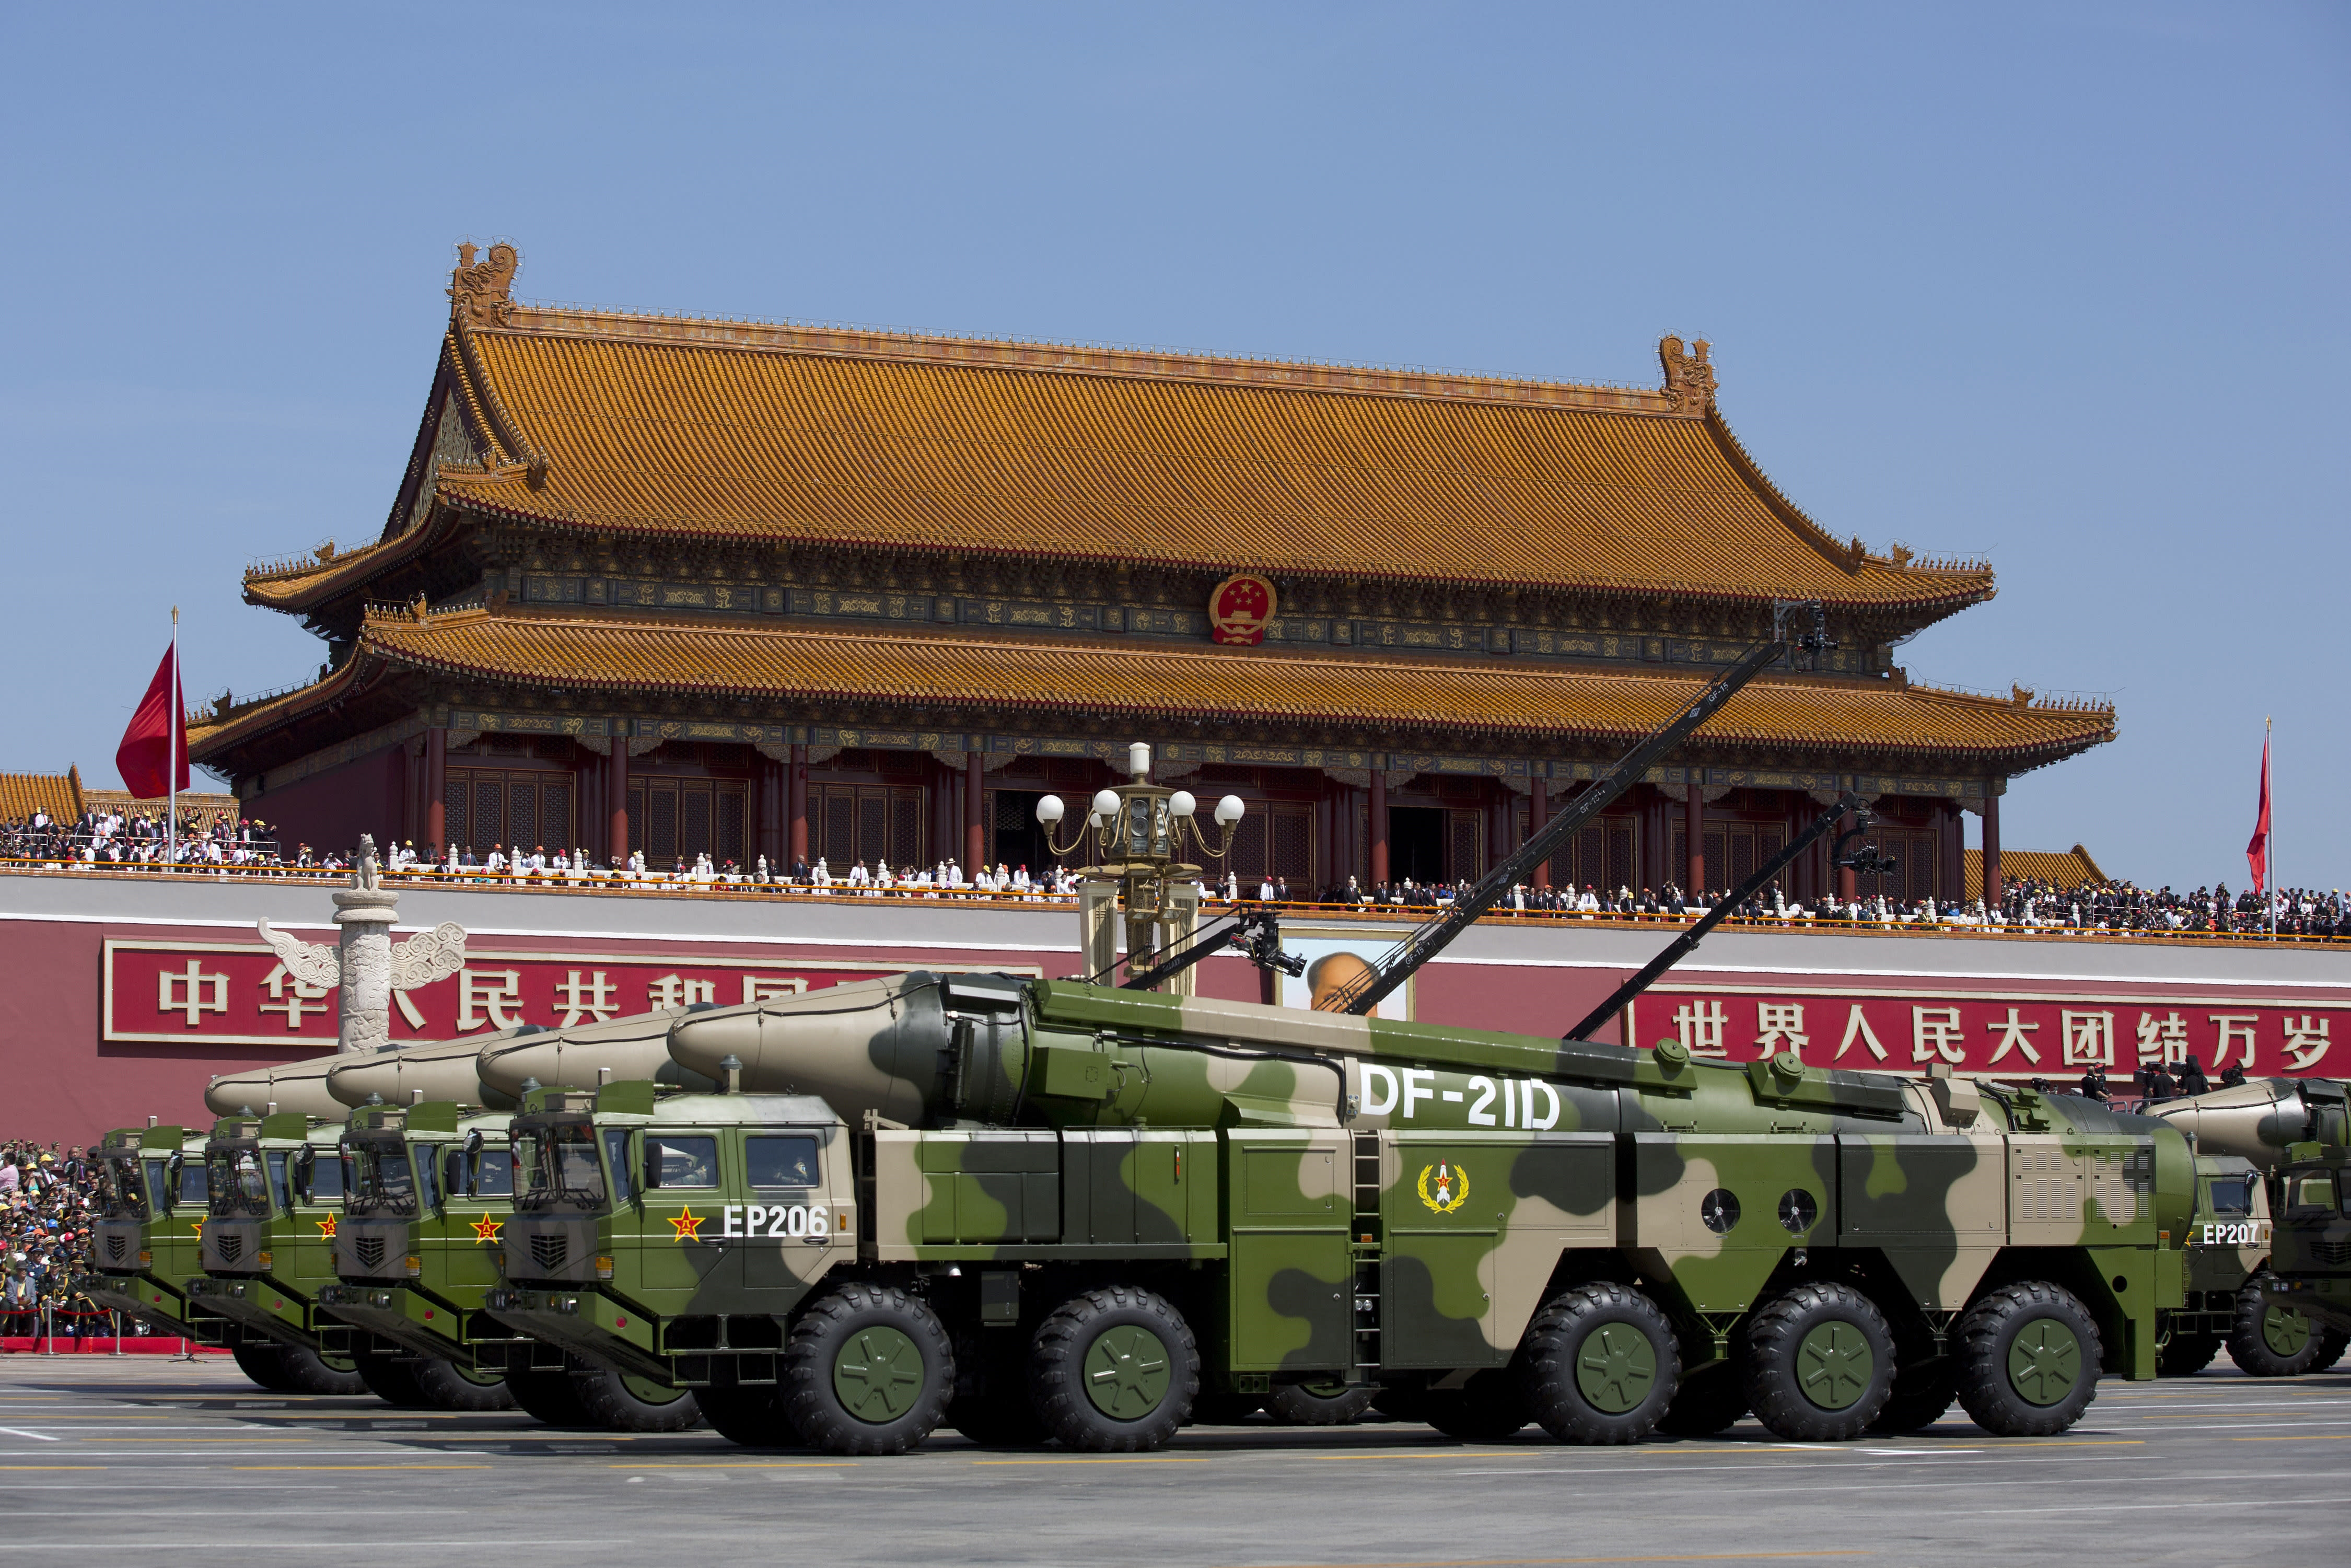 """FILE - In this Sept. 3, 2015, file photo, Chinese military vehicles carrying DF-21D anti-ship ballistic missiles, potentially capable of sinking a U.S. Nimitz-class aircraft carrier in a single strike, pass by Tiananmen Gate during a military parade to commemorate the 70th anniversary of the end of World War II, in Beijing. China's military test-fired two missiles into the South China Sea, including a """"carrier killer"""" military analysts suggest might have been developed to attack U.S. forces, a newspaper reported Thursday, Aug. 27, 2020. (AP Photo/Andy Wong, Pool, File)"""